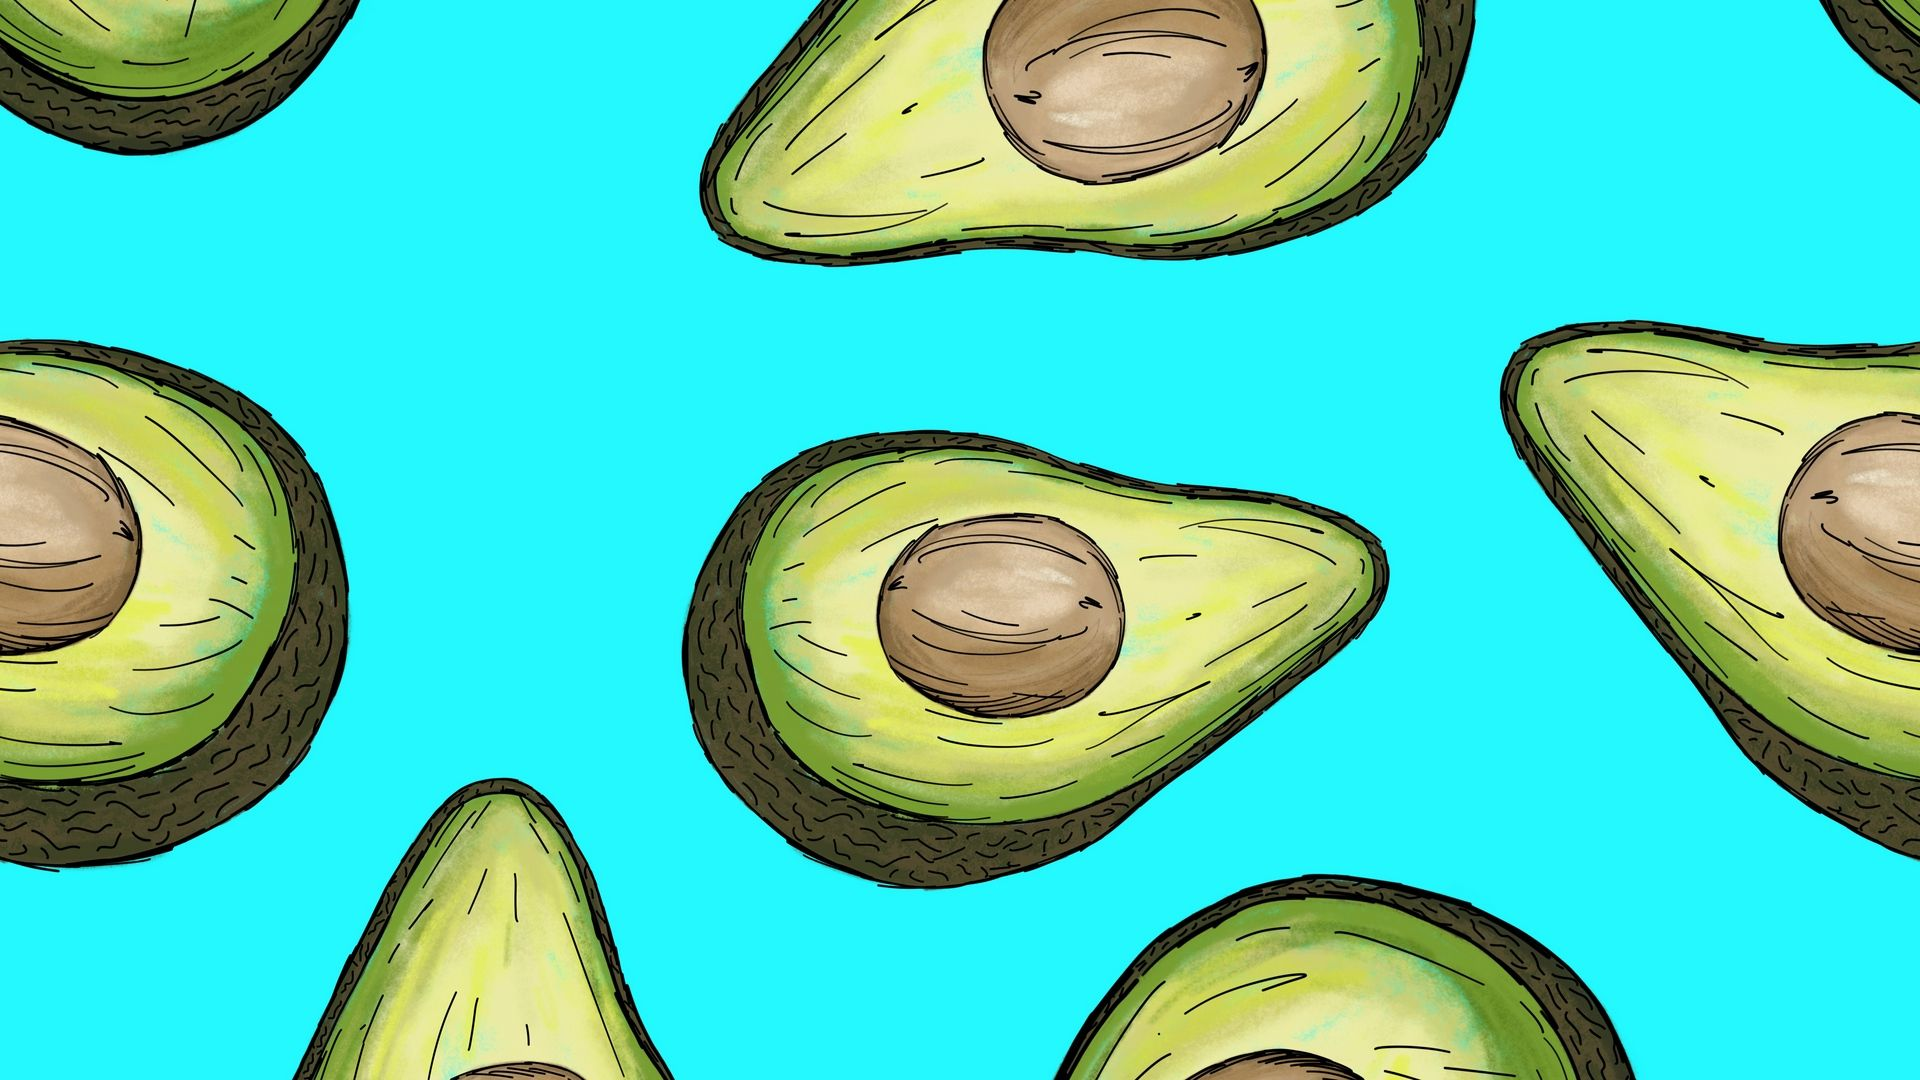 Avocado good wallpaper